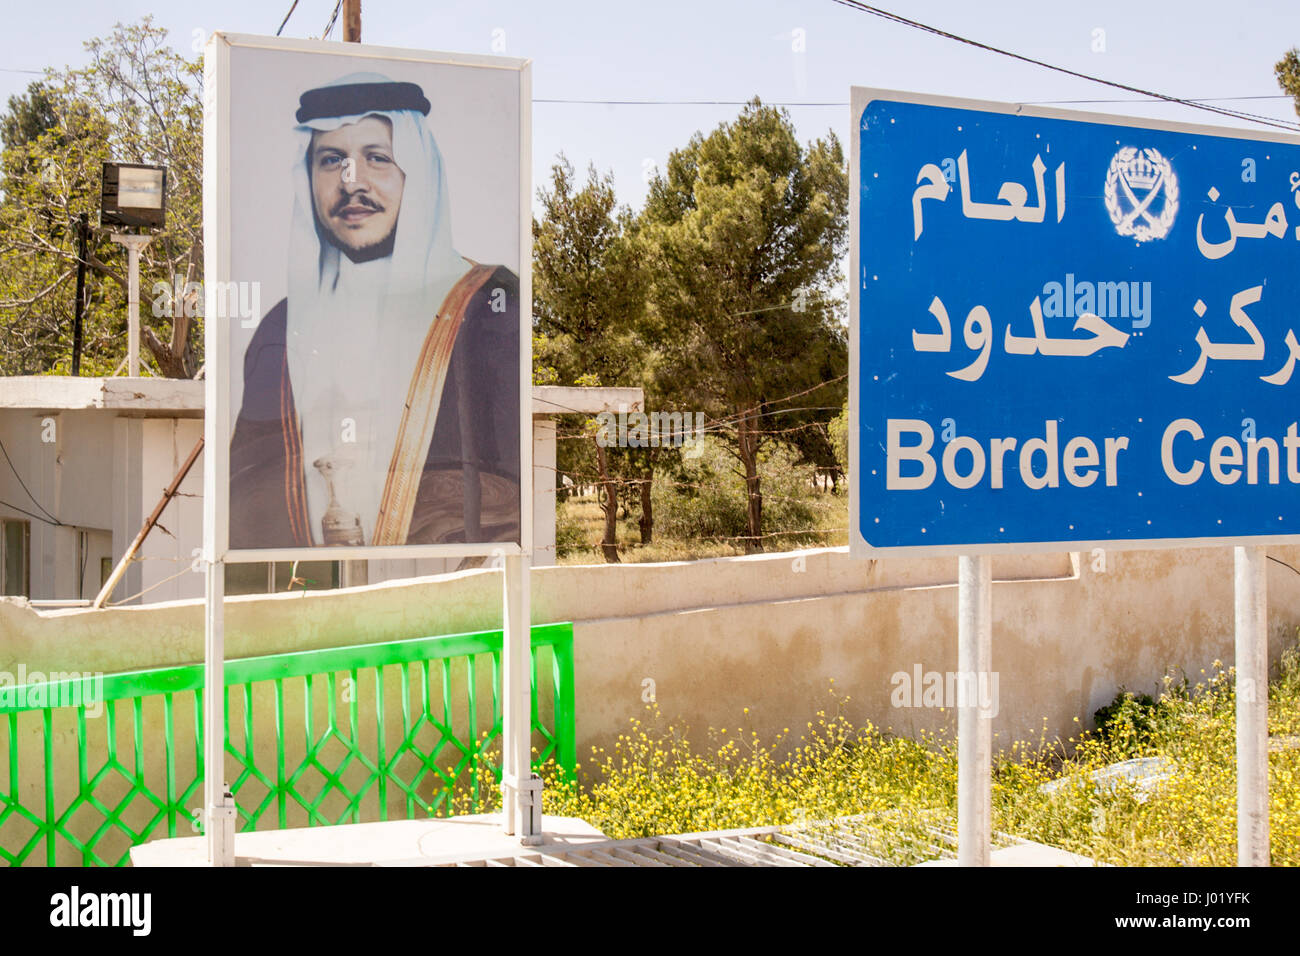 Portraits of Bashar al-Assad at the border crossing between Lebanon and Syria. - Stock Image